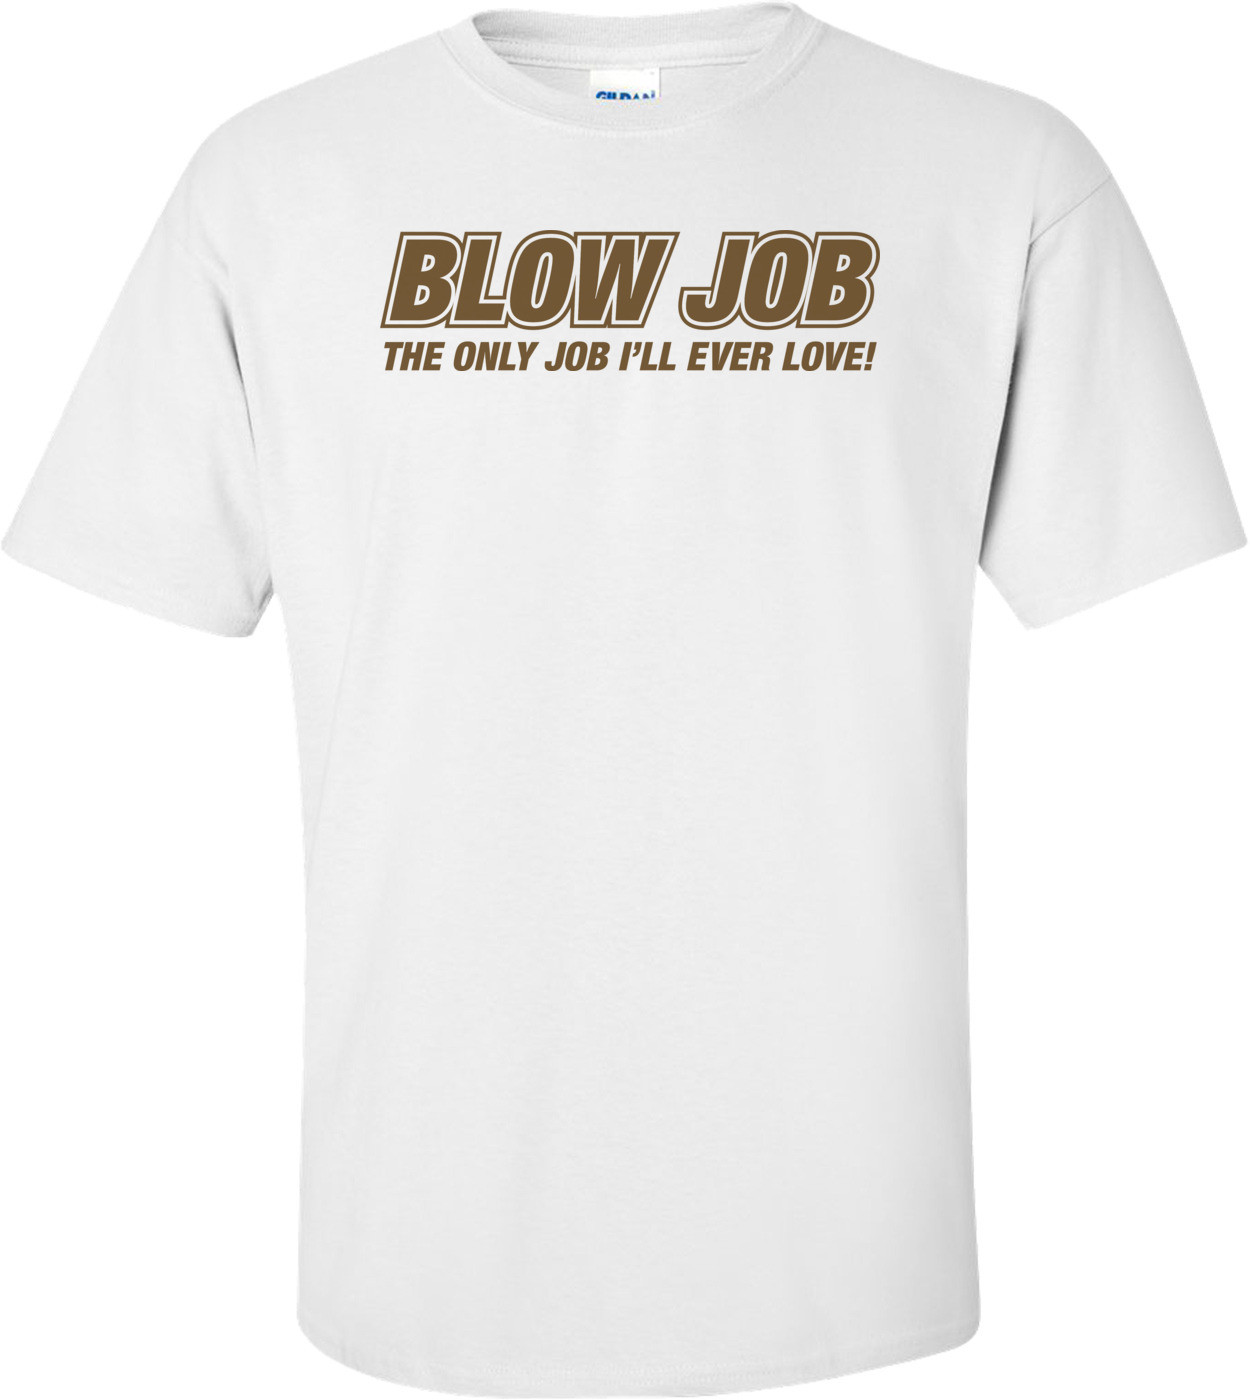 Blow Job The Only Job I'll Ever Love